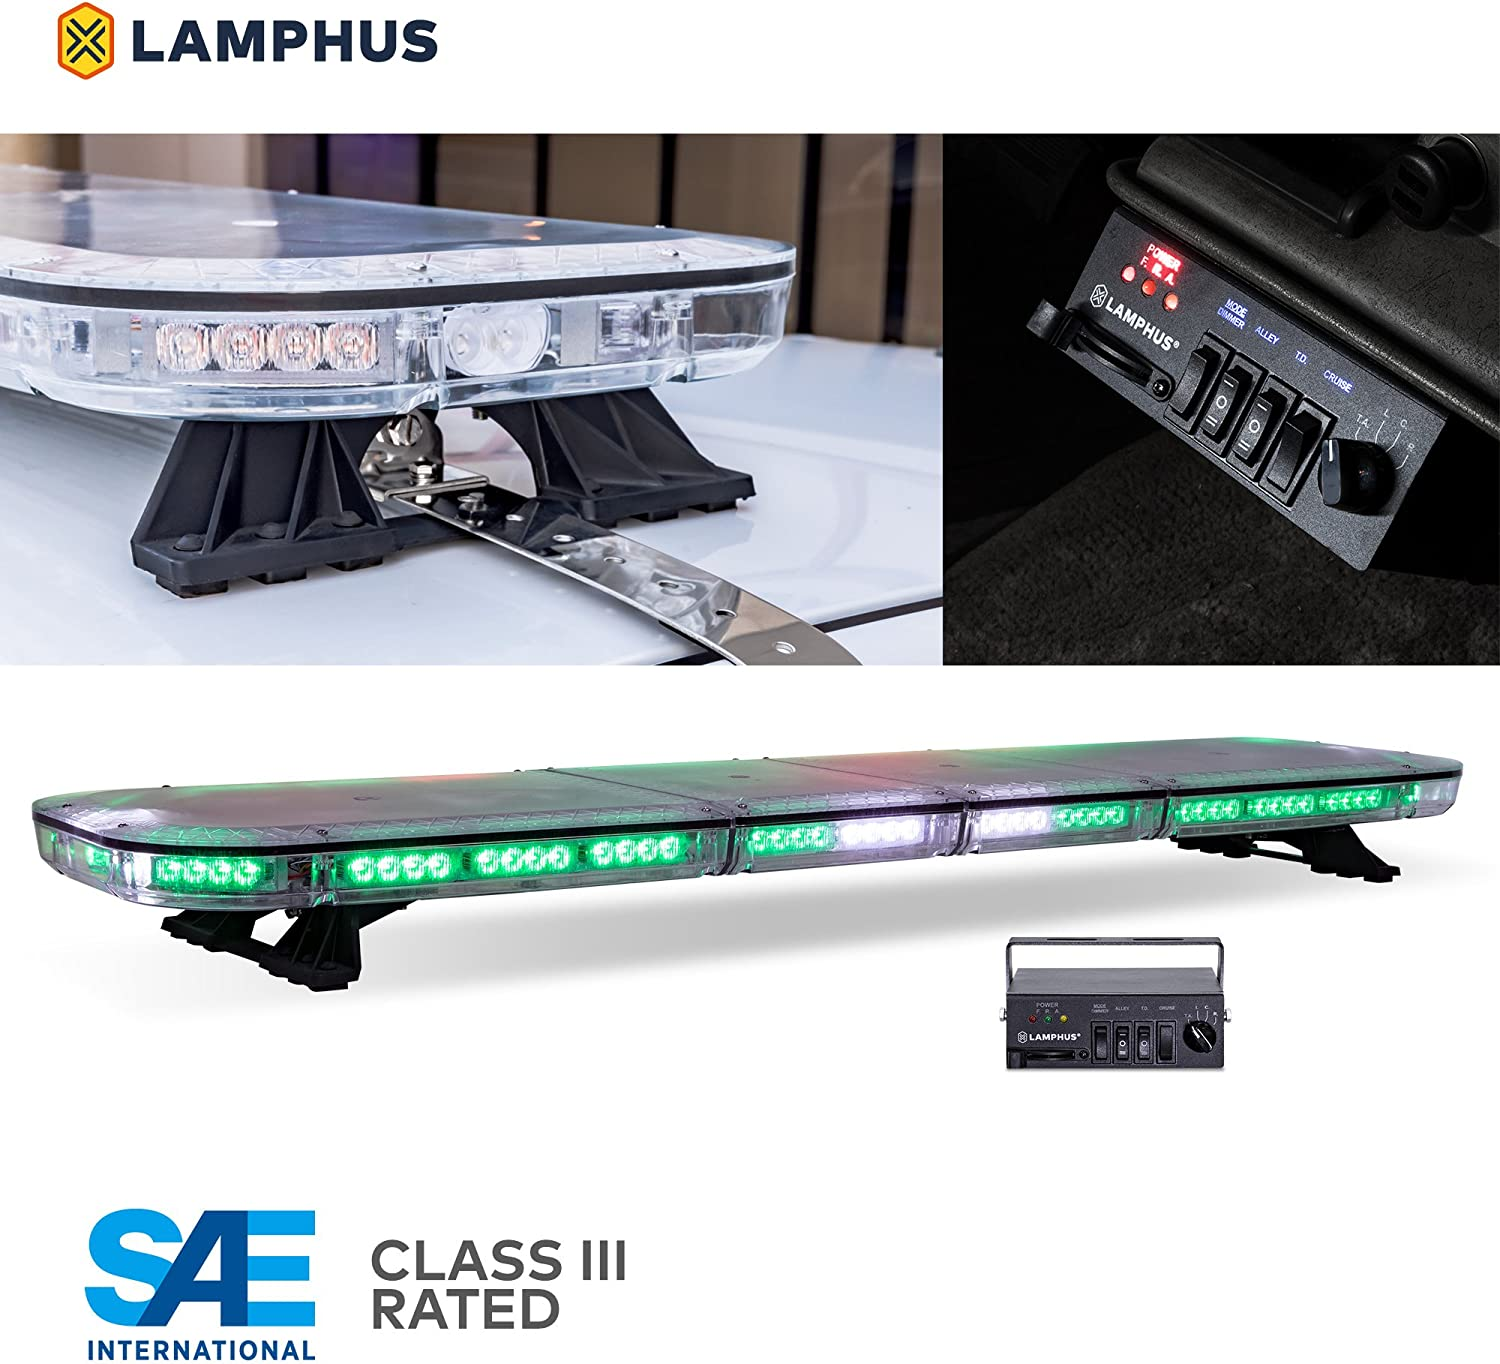 Blue Red Rooftop Strobe Warning Police Light Bar 58 Flash Mode Gutter Bracket LAMPHUS SolarBlast SBFB82 37 82W Blue RED LED Emergency Full-Size Light Bar Controller Box SAE J595 Class III